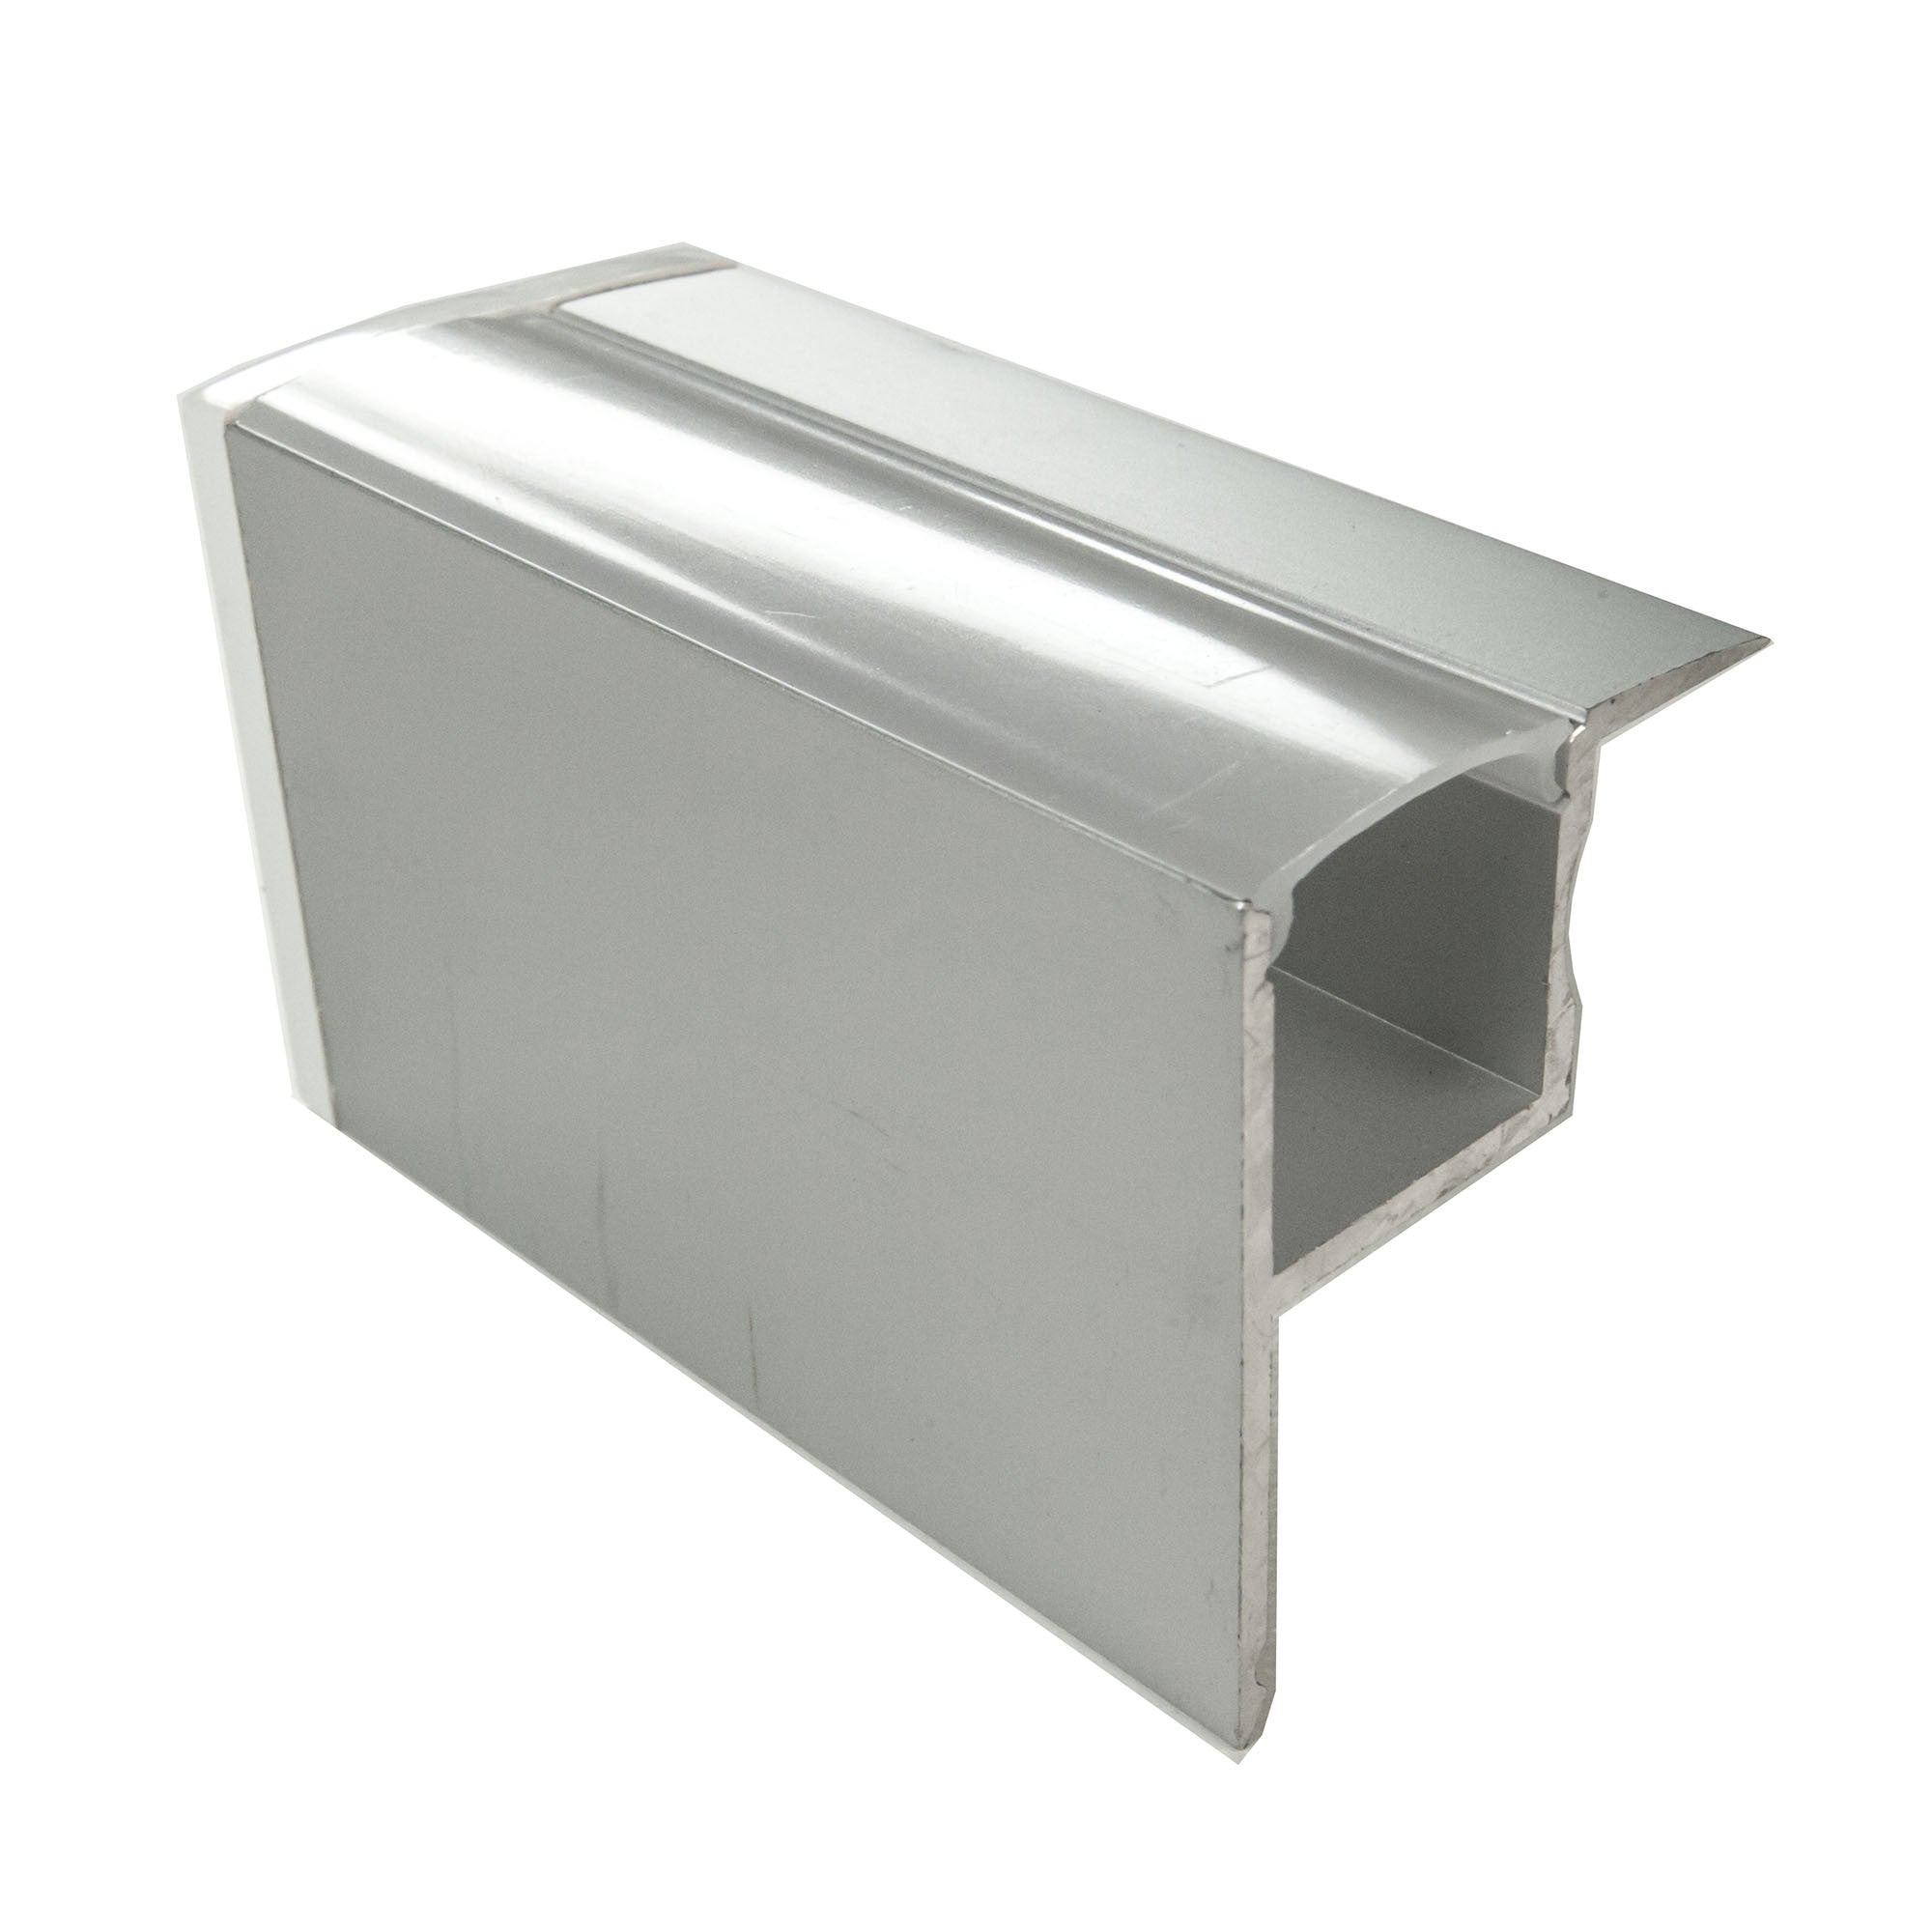 Aluminum Channel - MOSS-ALM-4538 - Moss LED